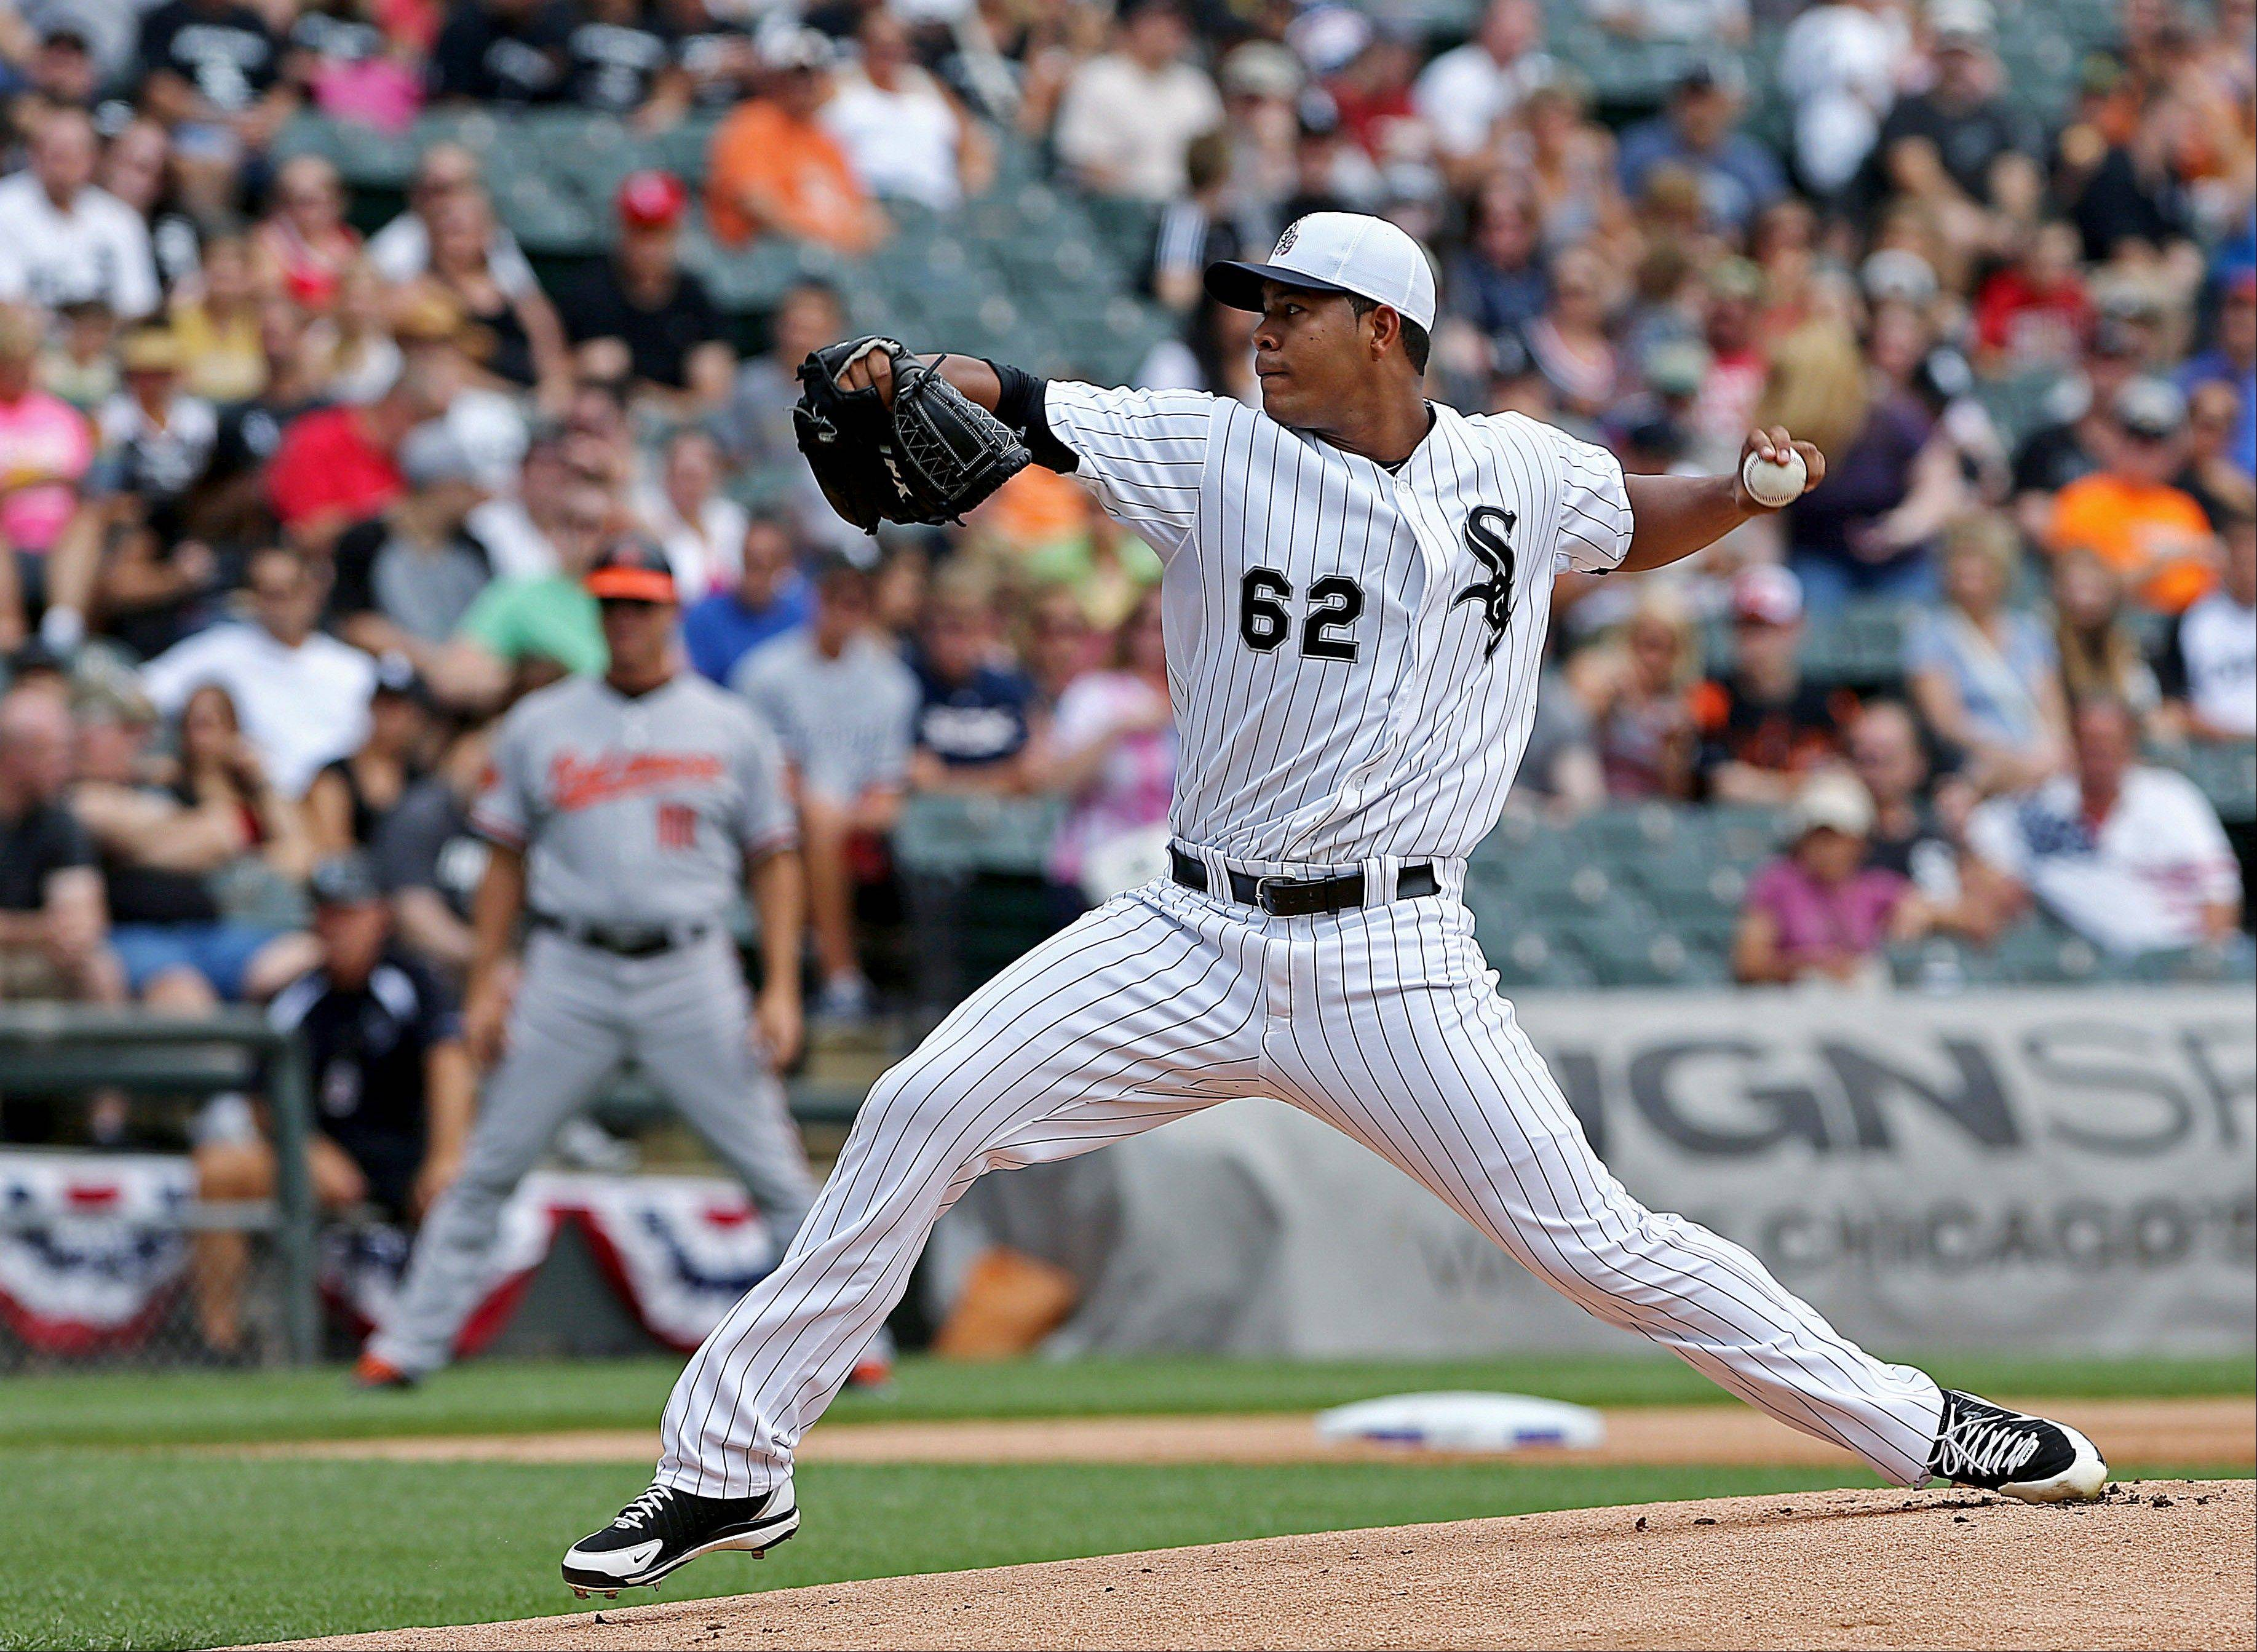 White Sox starting pitcher Jose Quintana struck out 11 Baltimore players Thursday at U.S. Cellular Field.